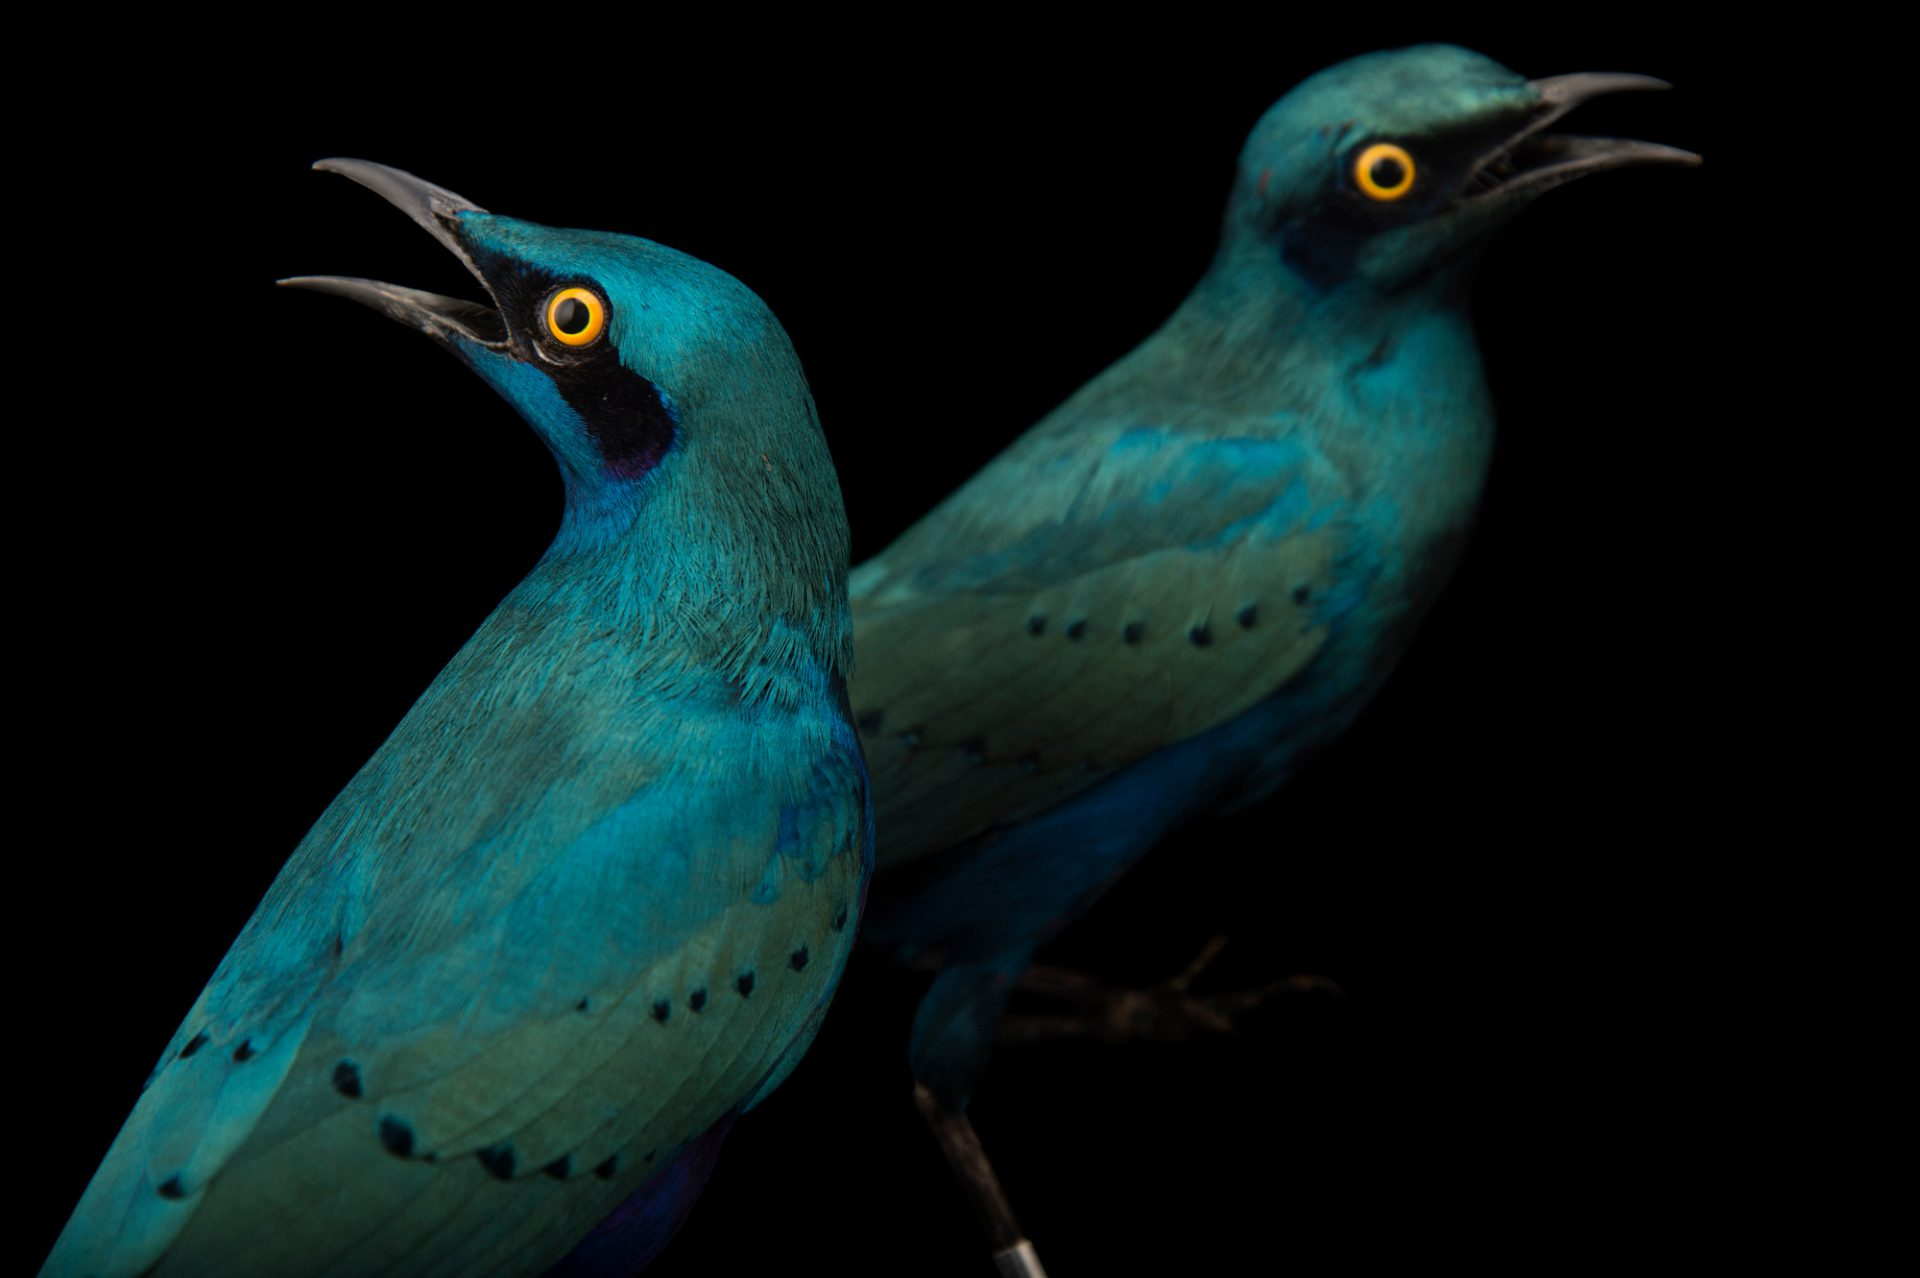 Picture of two lesser blue-eared glossy starlings (Lamprotornis chloropterus) at the Houston Zoo.